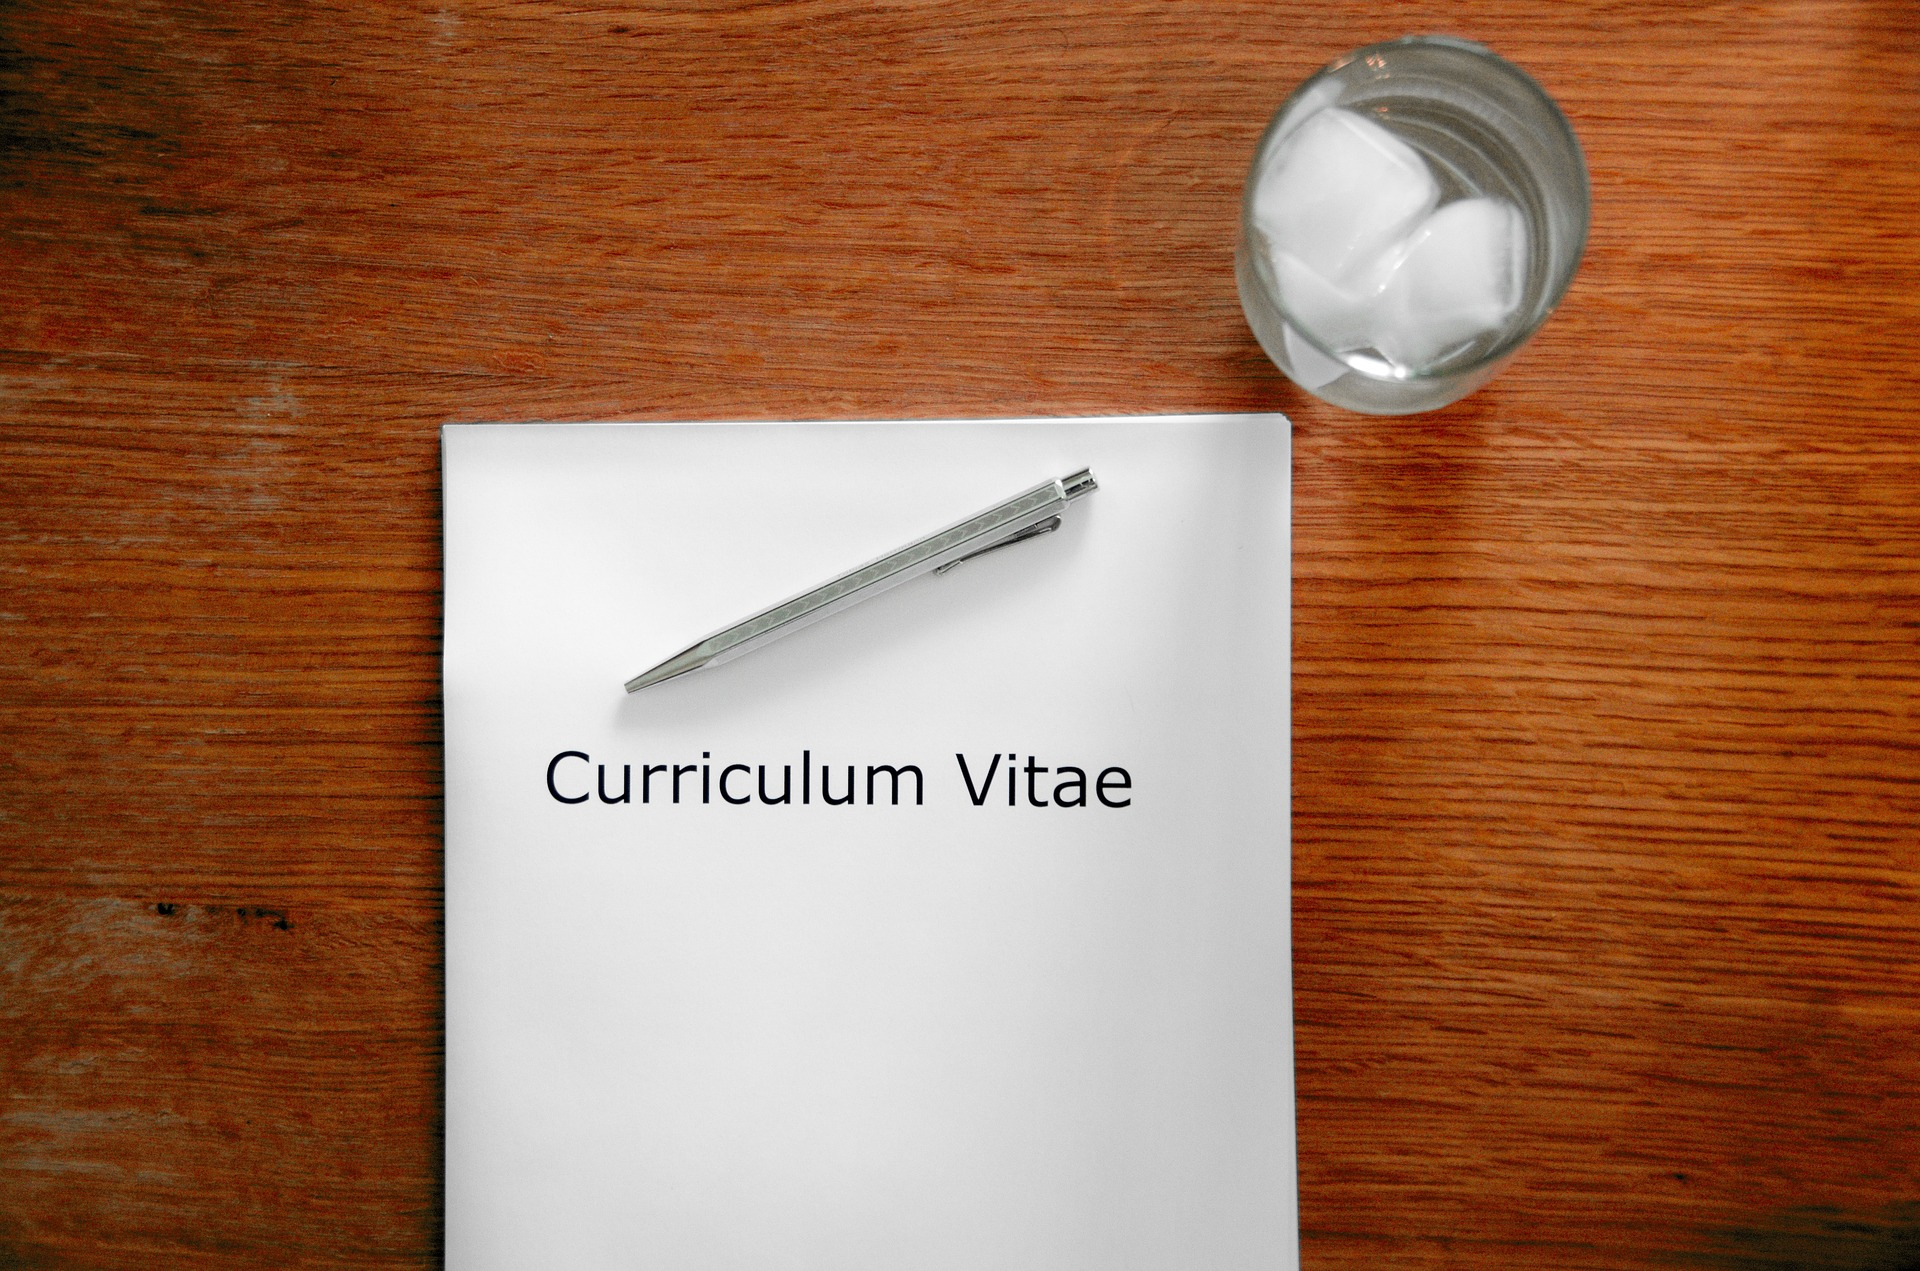 """a white sheet of paper that reads """"Curriculum Vitae,"""" with a pen on top and a water glass next to it."""